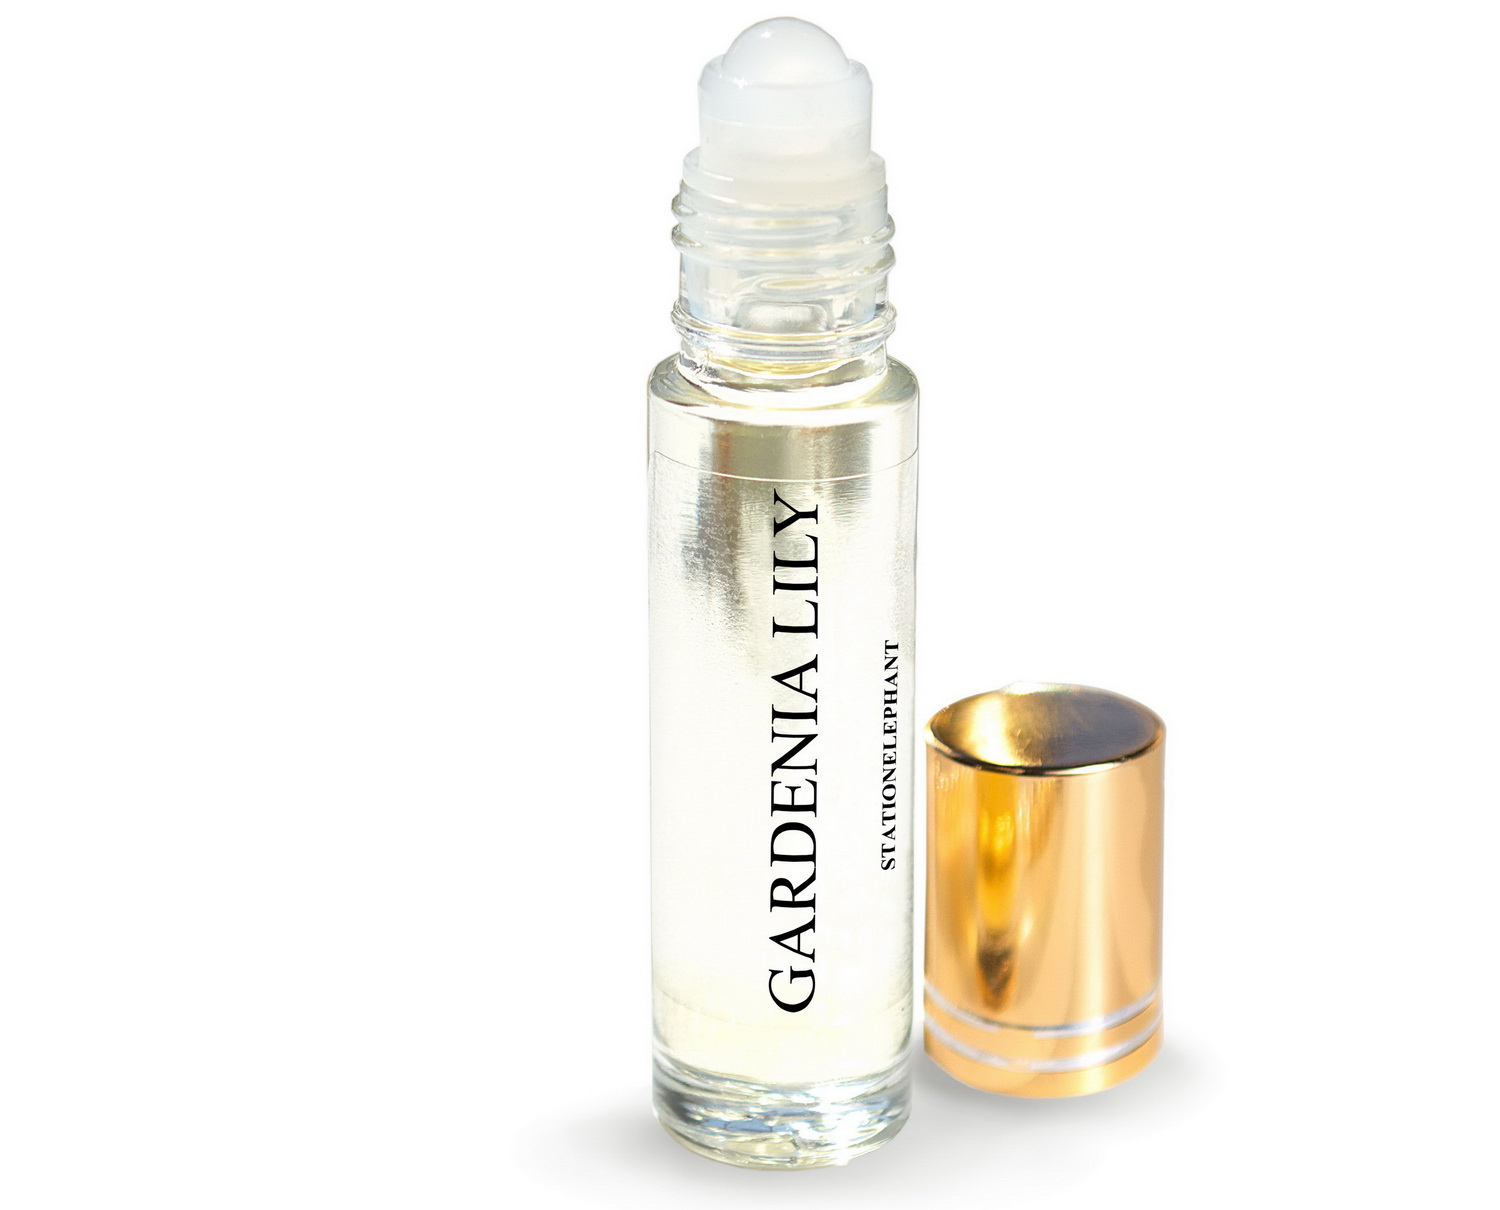 GARDENIA LILY Vegan Perfume Oil by StationElephant.